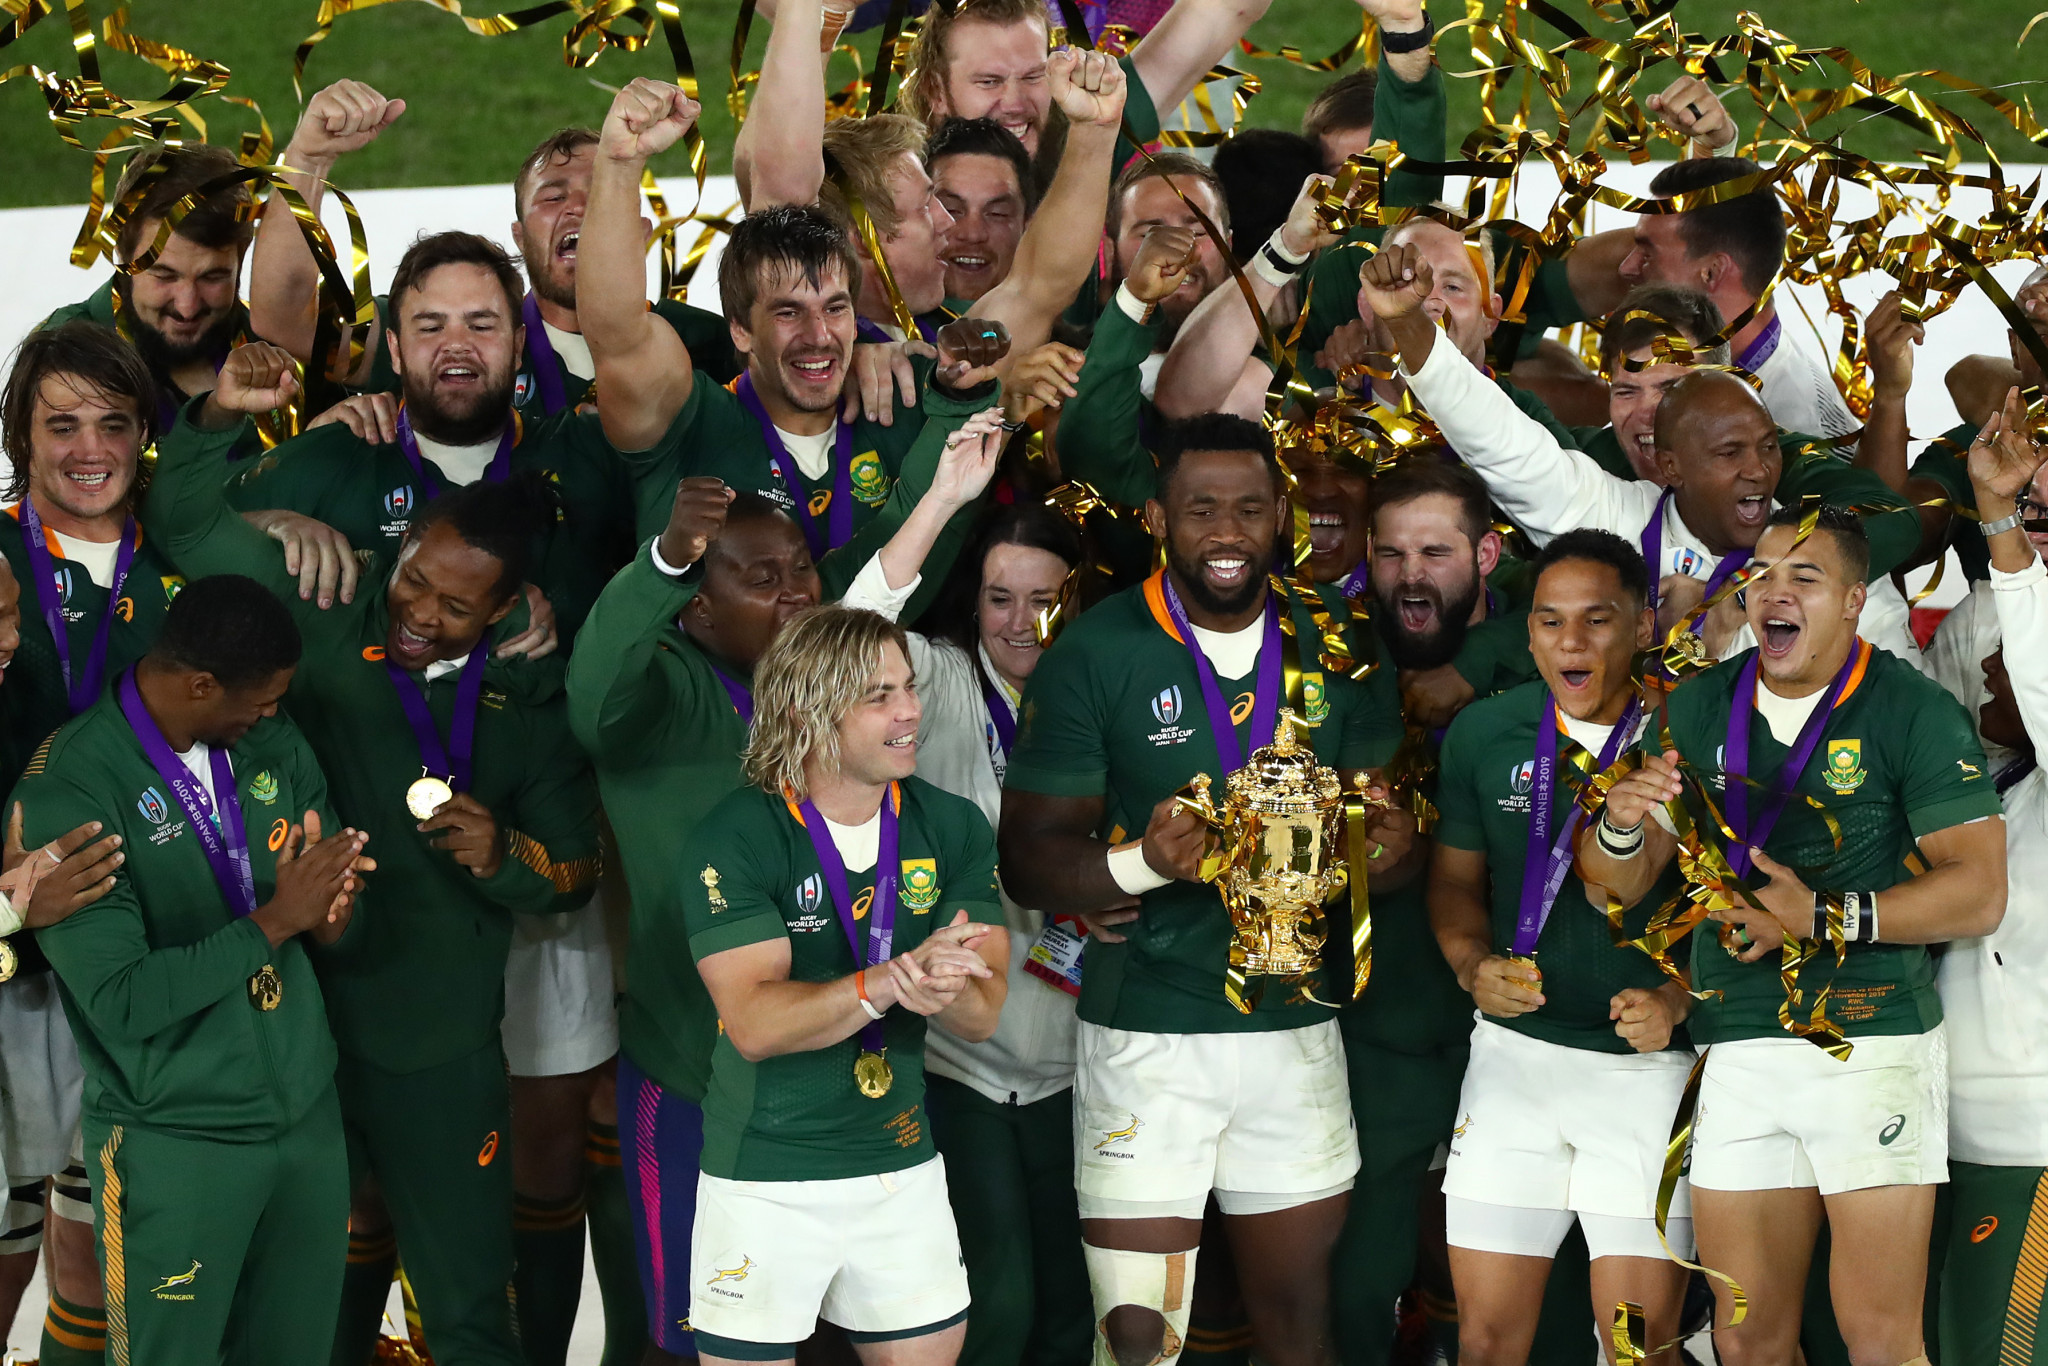 Rugby World Cup success leaves legacy and support for Tokyo 2020, report says